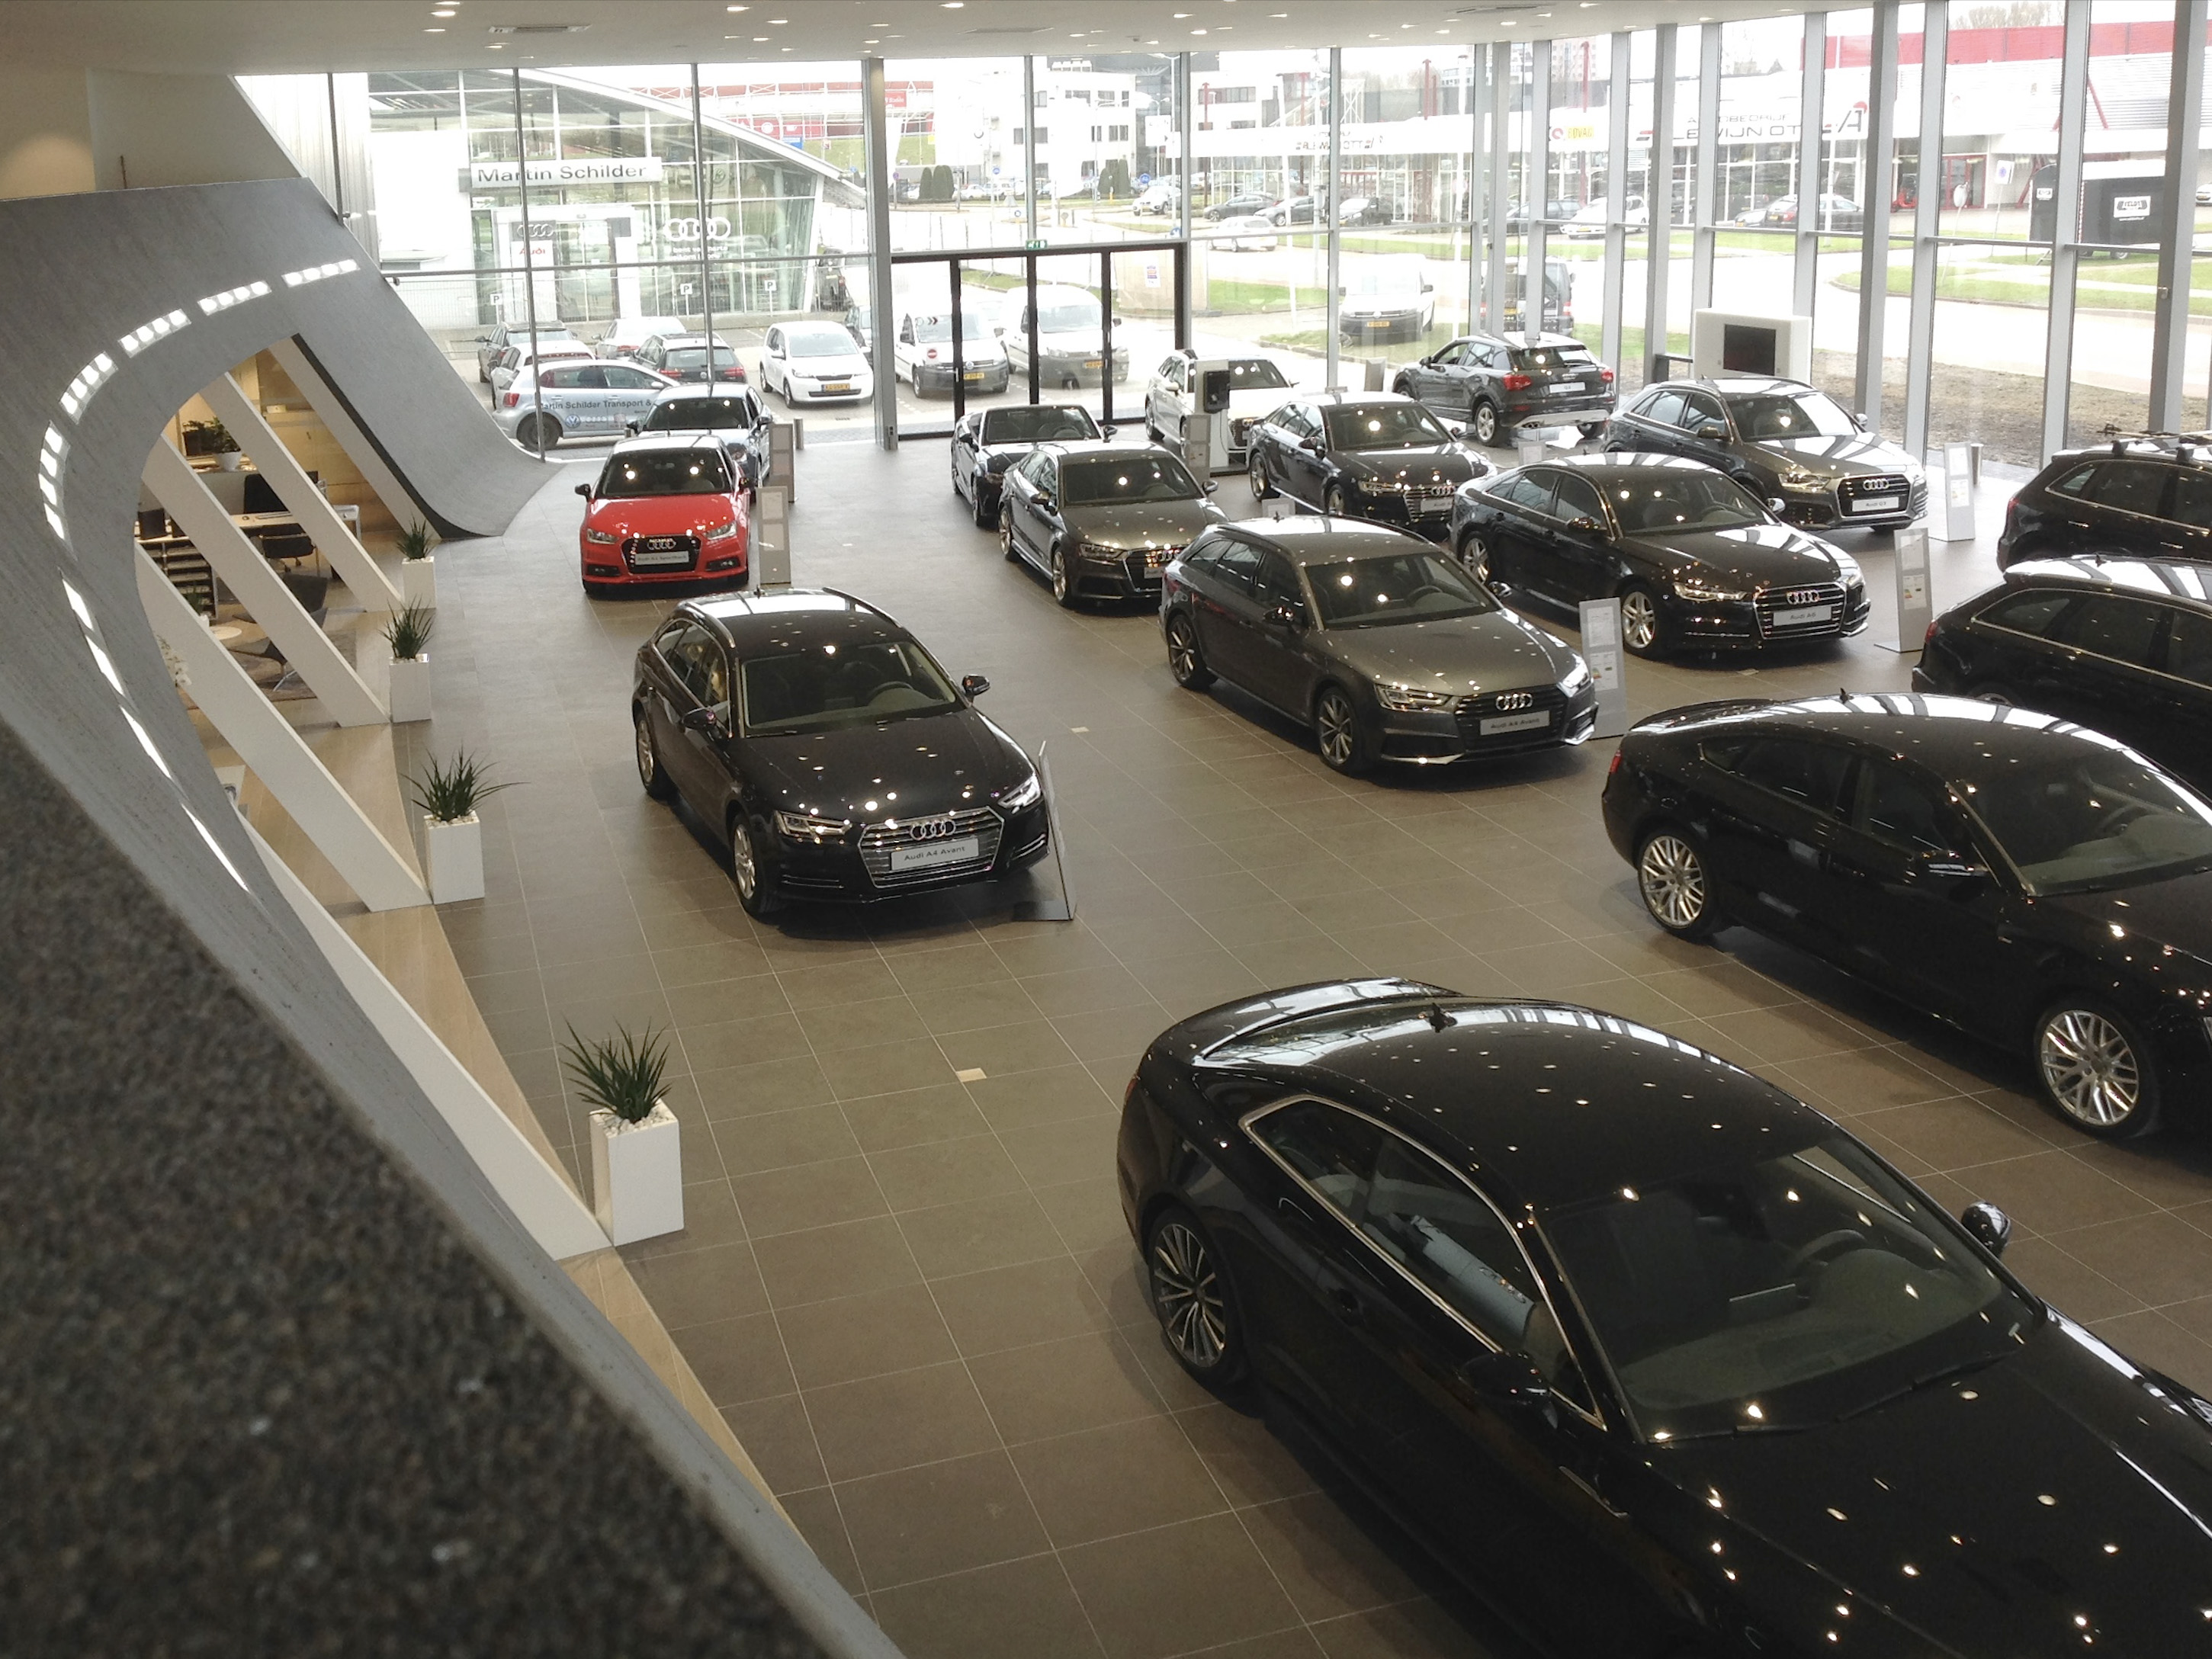 Audi showroom in Alkmaar